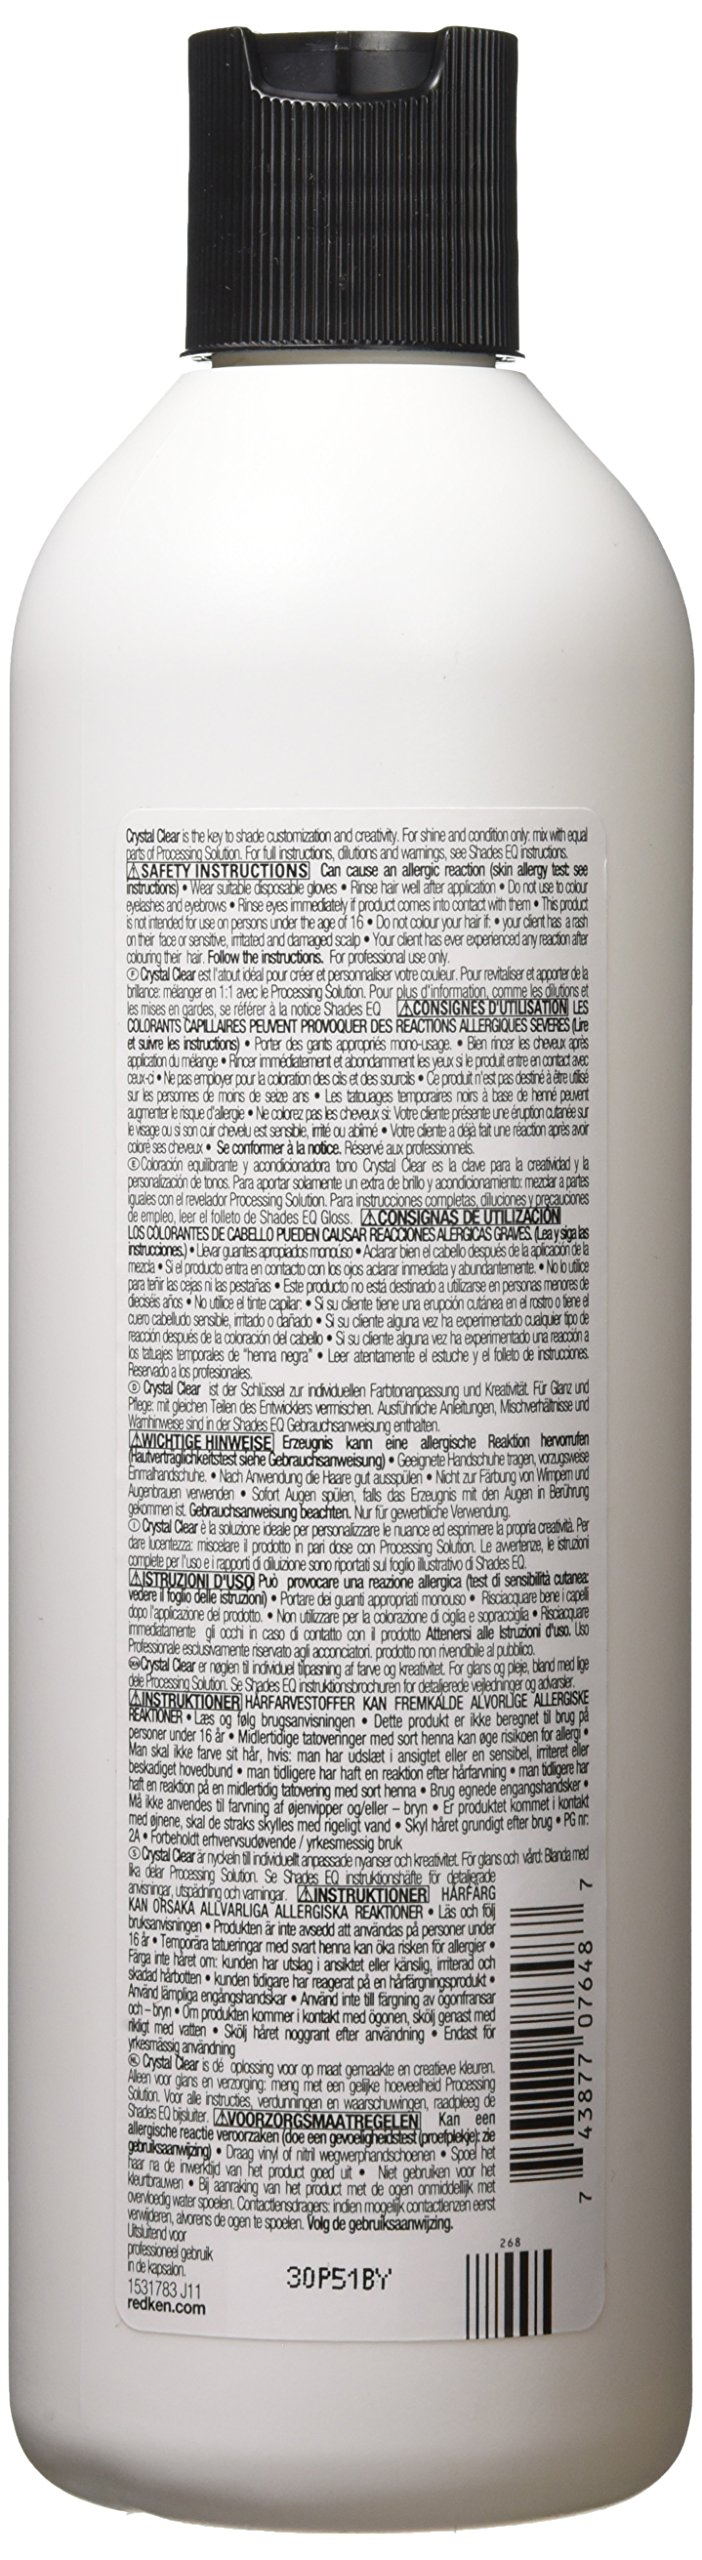 Redken Shades EQ Color Gloss Hair Color for Unisex, 000 Crystal Clear, 16.89 Ounce by REDKEN (Image #2)